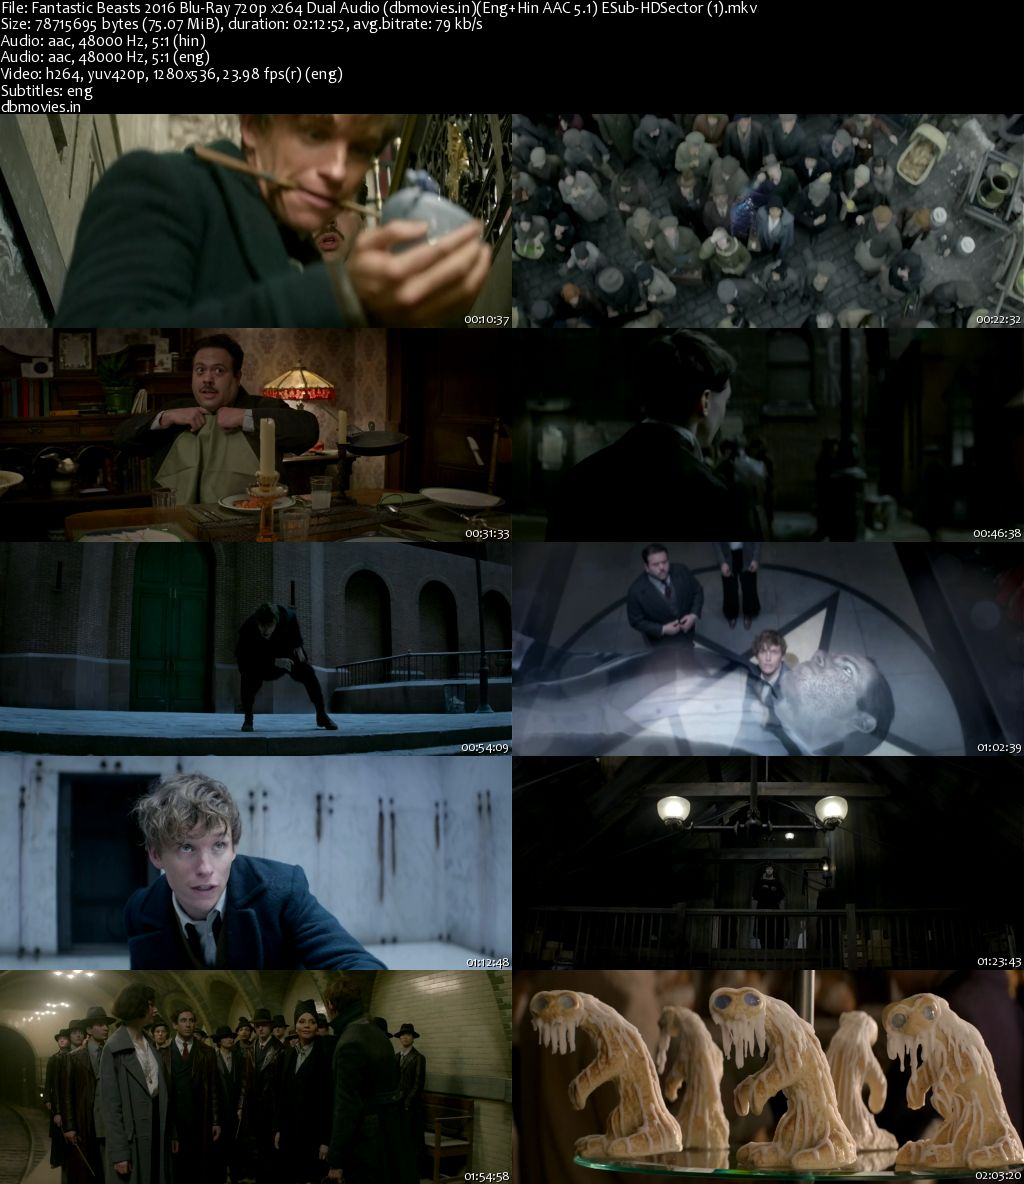 Fantastic Beasts and Where to Find Them 2016 Full Movie Dual Audio Hindi Download 720p